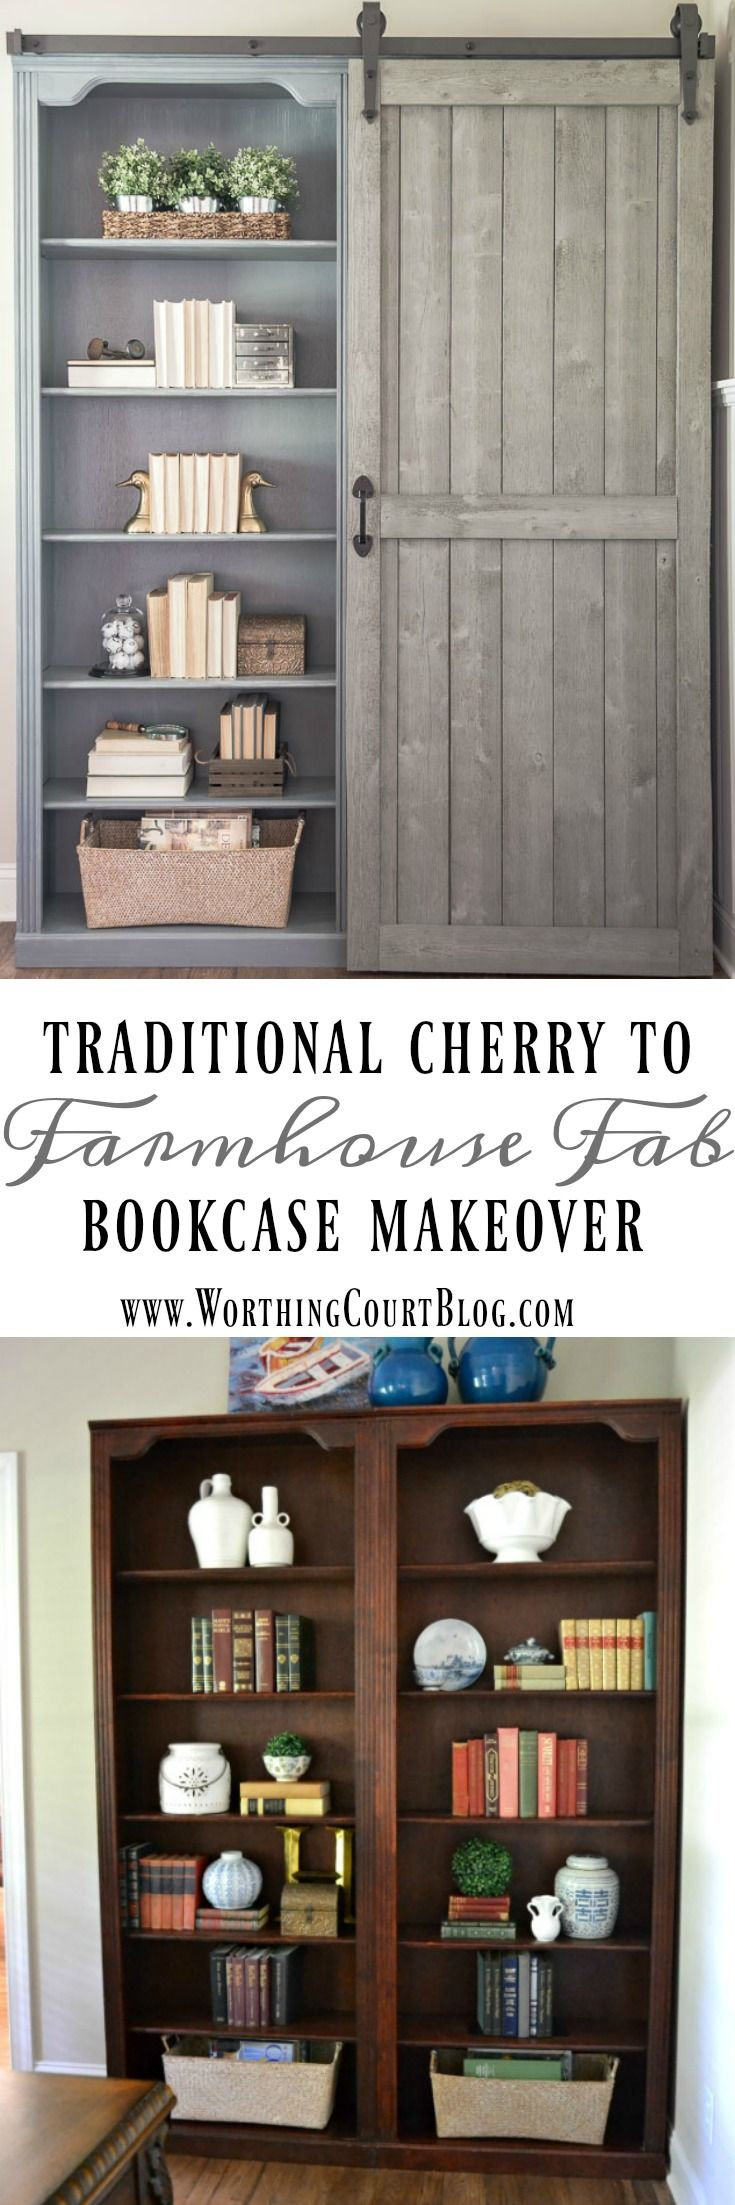 Best 25 bookcase makeover ideas on pinterest cheap bookcase bookcase makeover traditional cherry to farmhouse fab amipublicfo Choice Image